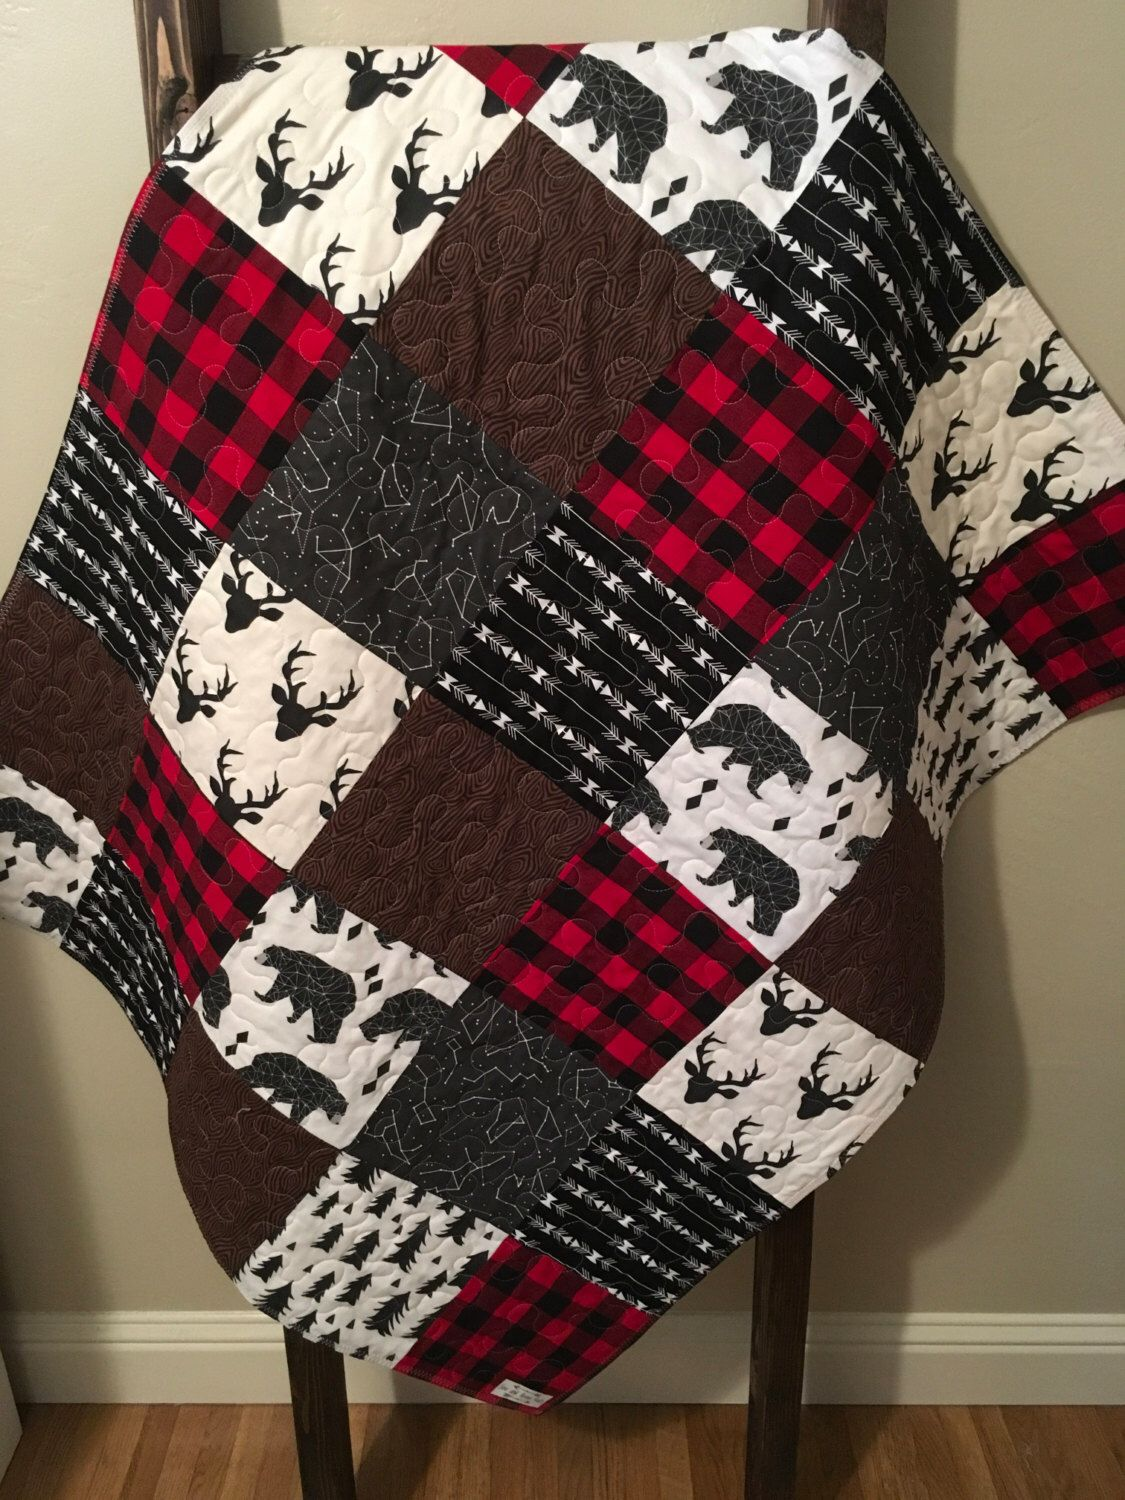 Baby Boy Quilt Rustic Baby Quilt Deer Baby Quilt Baby Boy Crib Bedding Woodland Buffalo Red Plaid Bear Arrow Tree Baby Boy Quilts Rustic Baby Quilt Baby Quilts